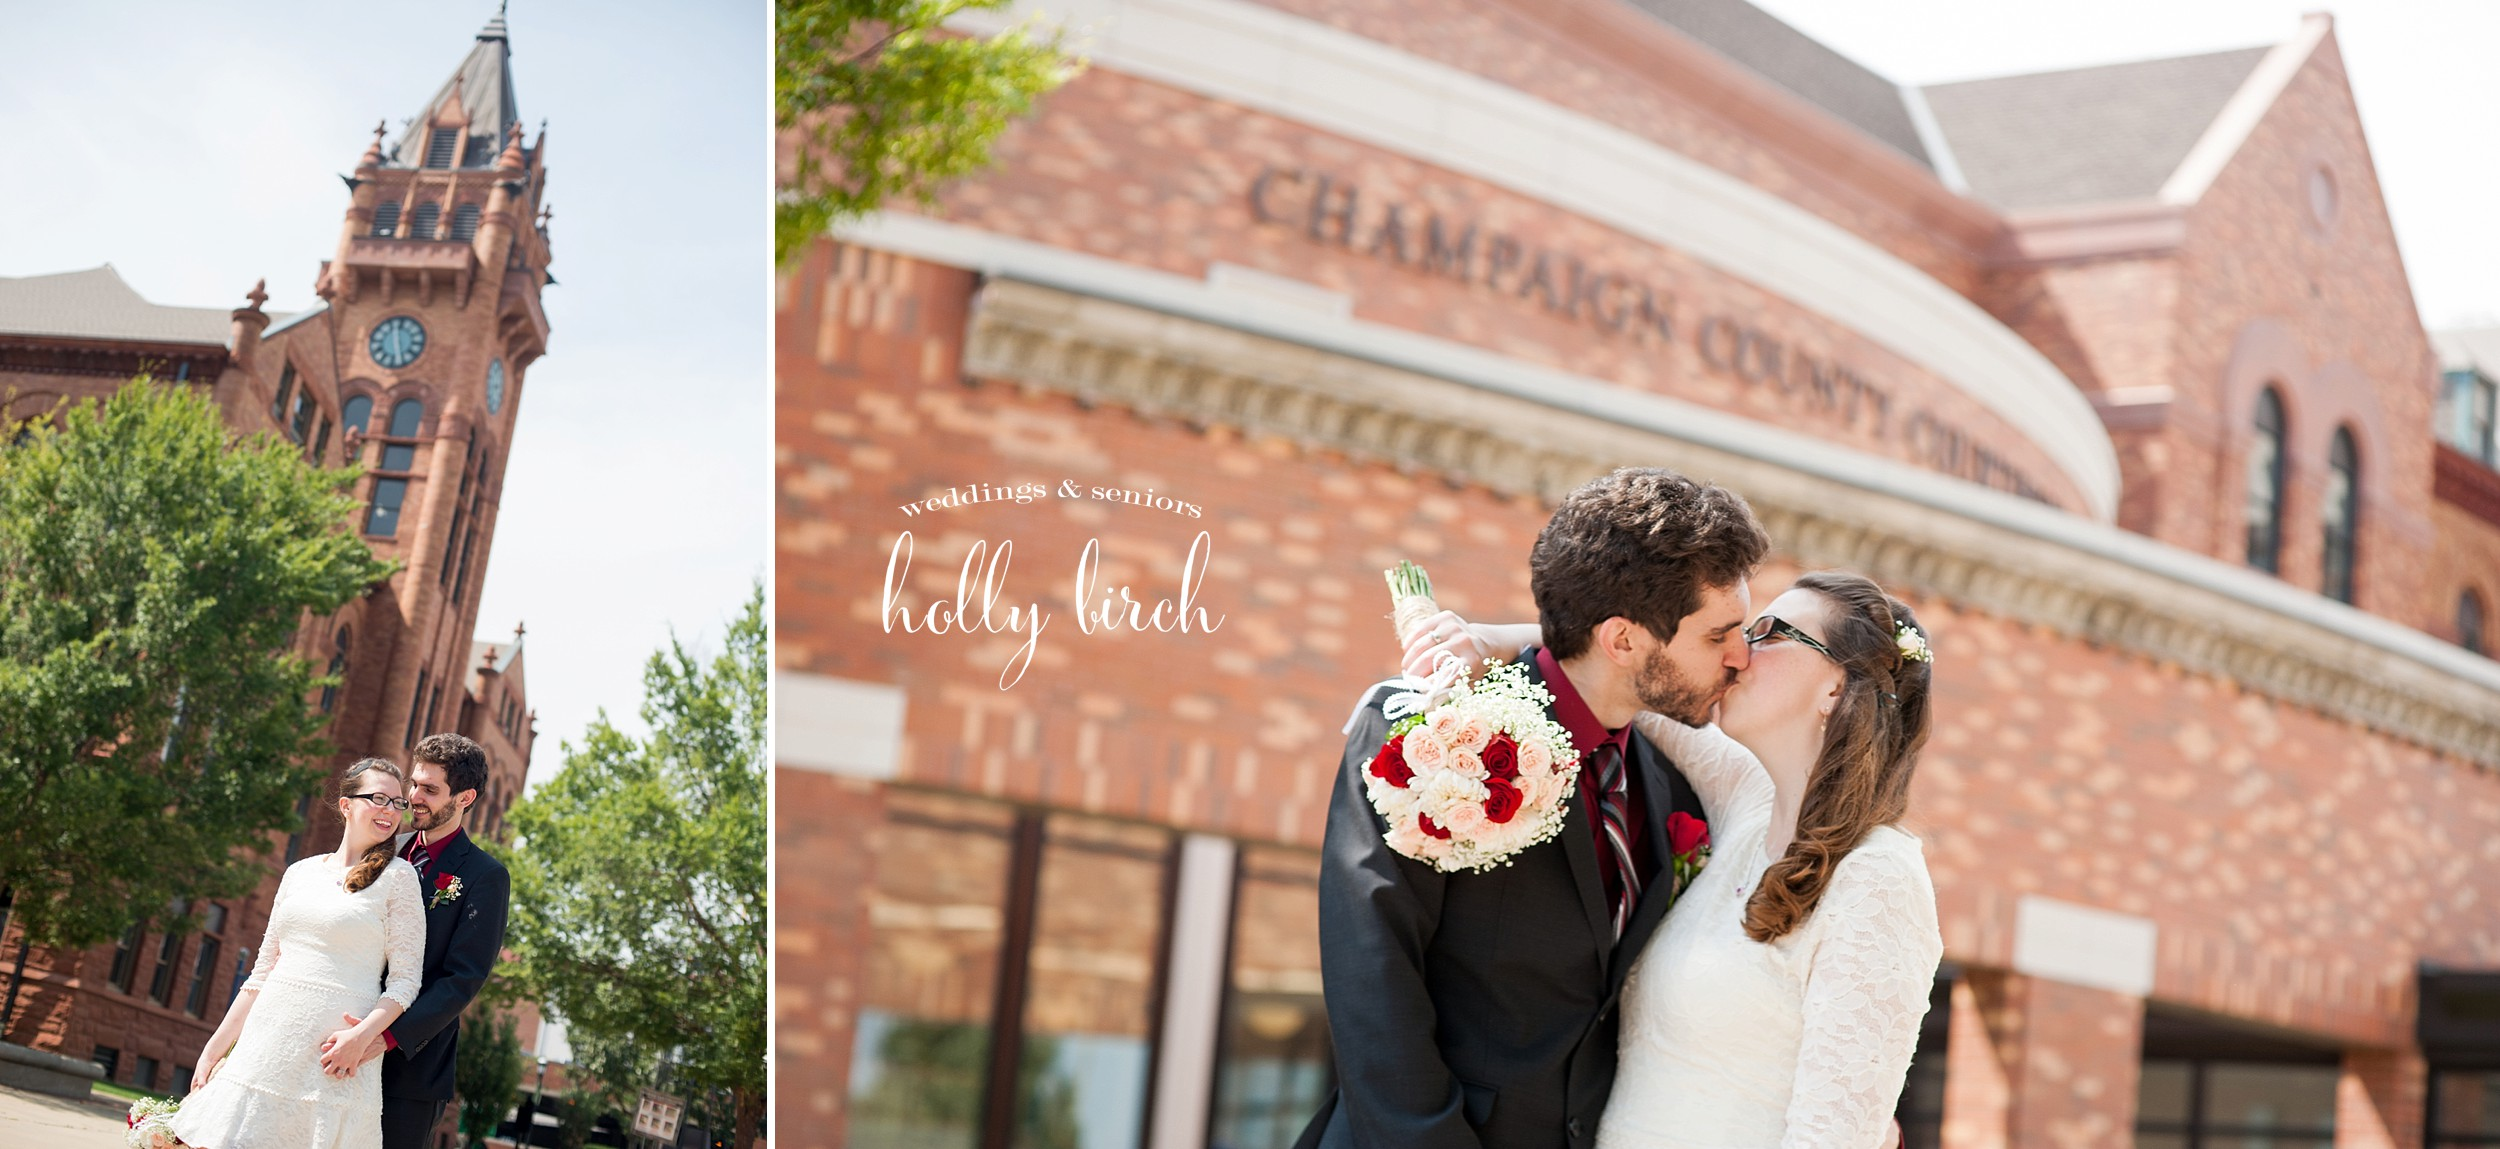 beautiful brick courthouse wedding